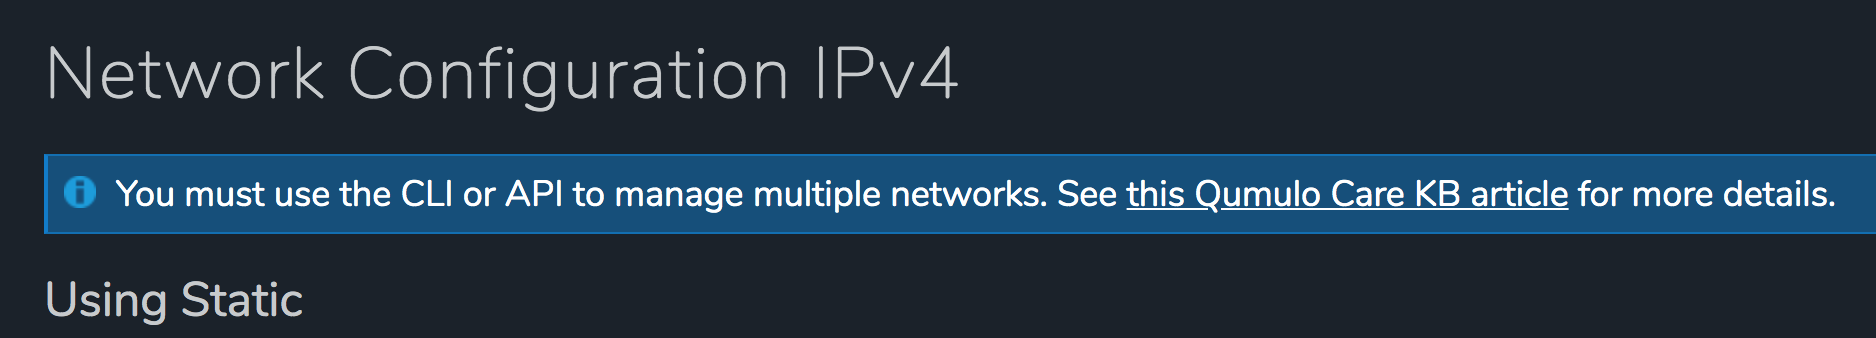 ipv4_banner.png